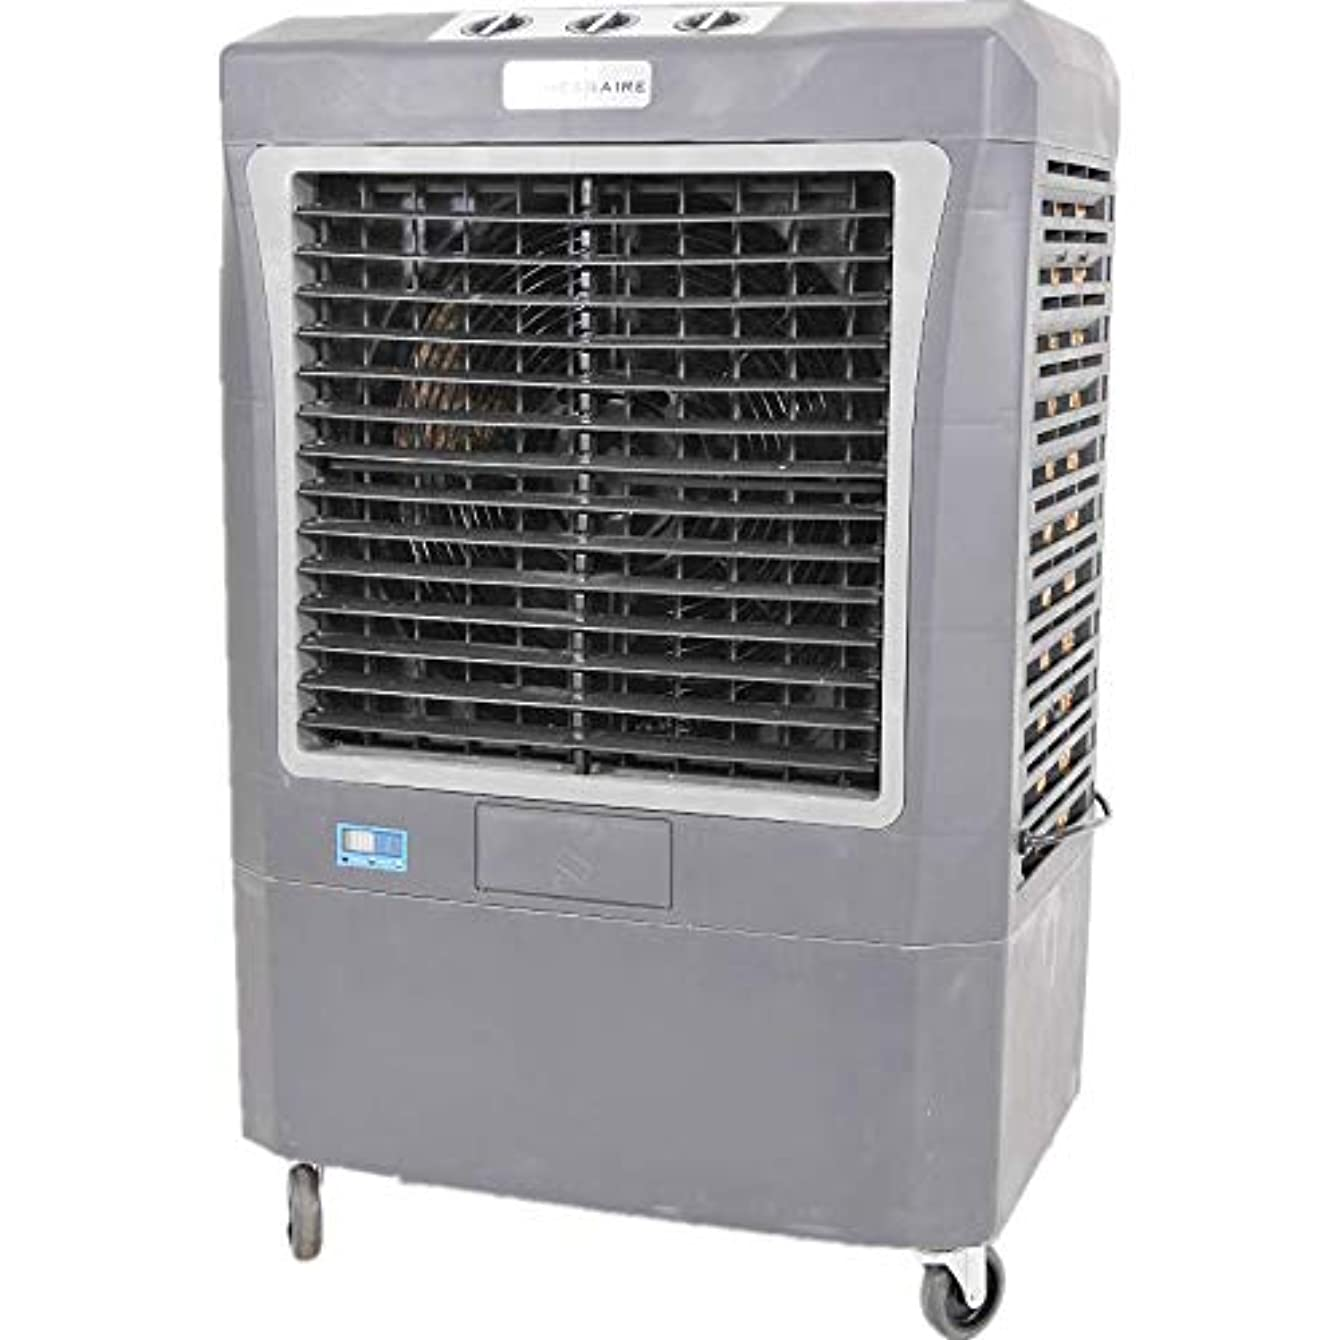 Hessaire 3100 CFM 3-Speed Portable Evaporative Cooler for 950 sq. ft.